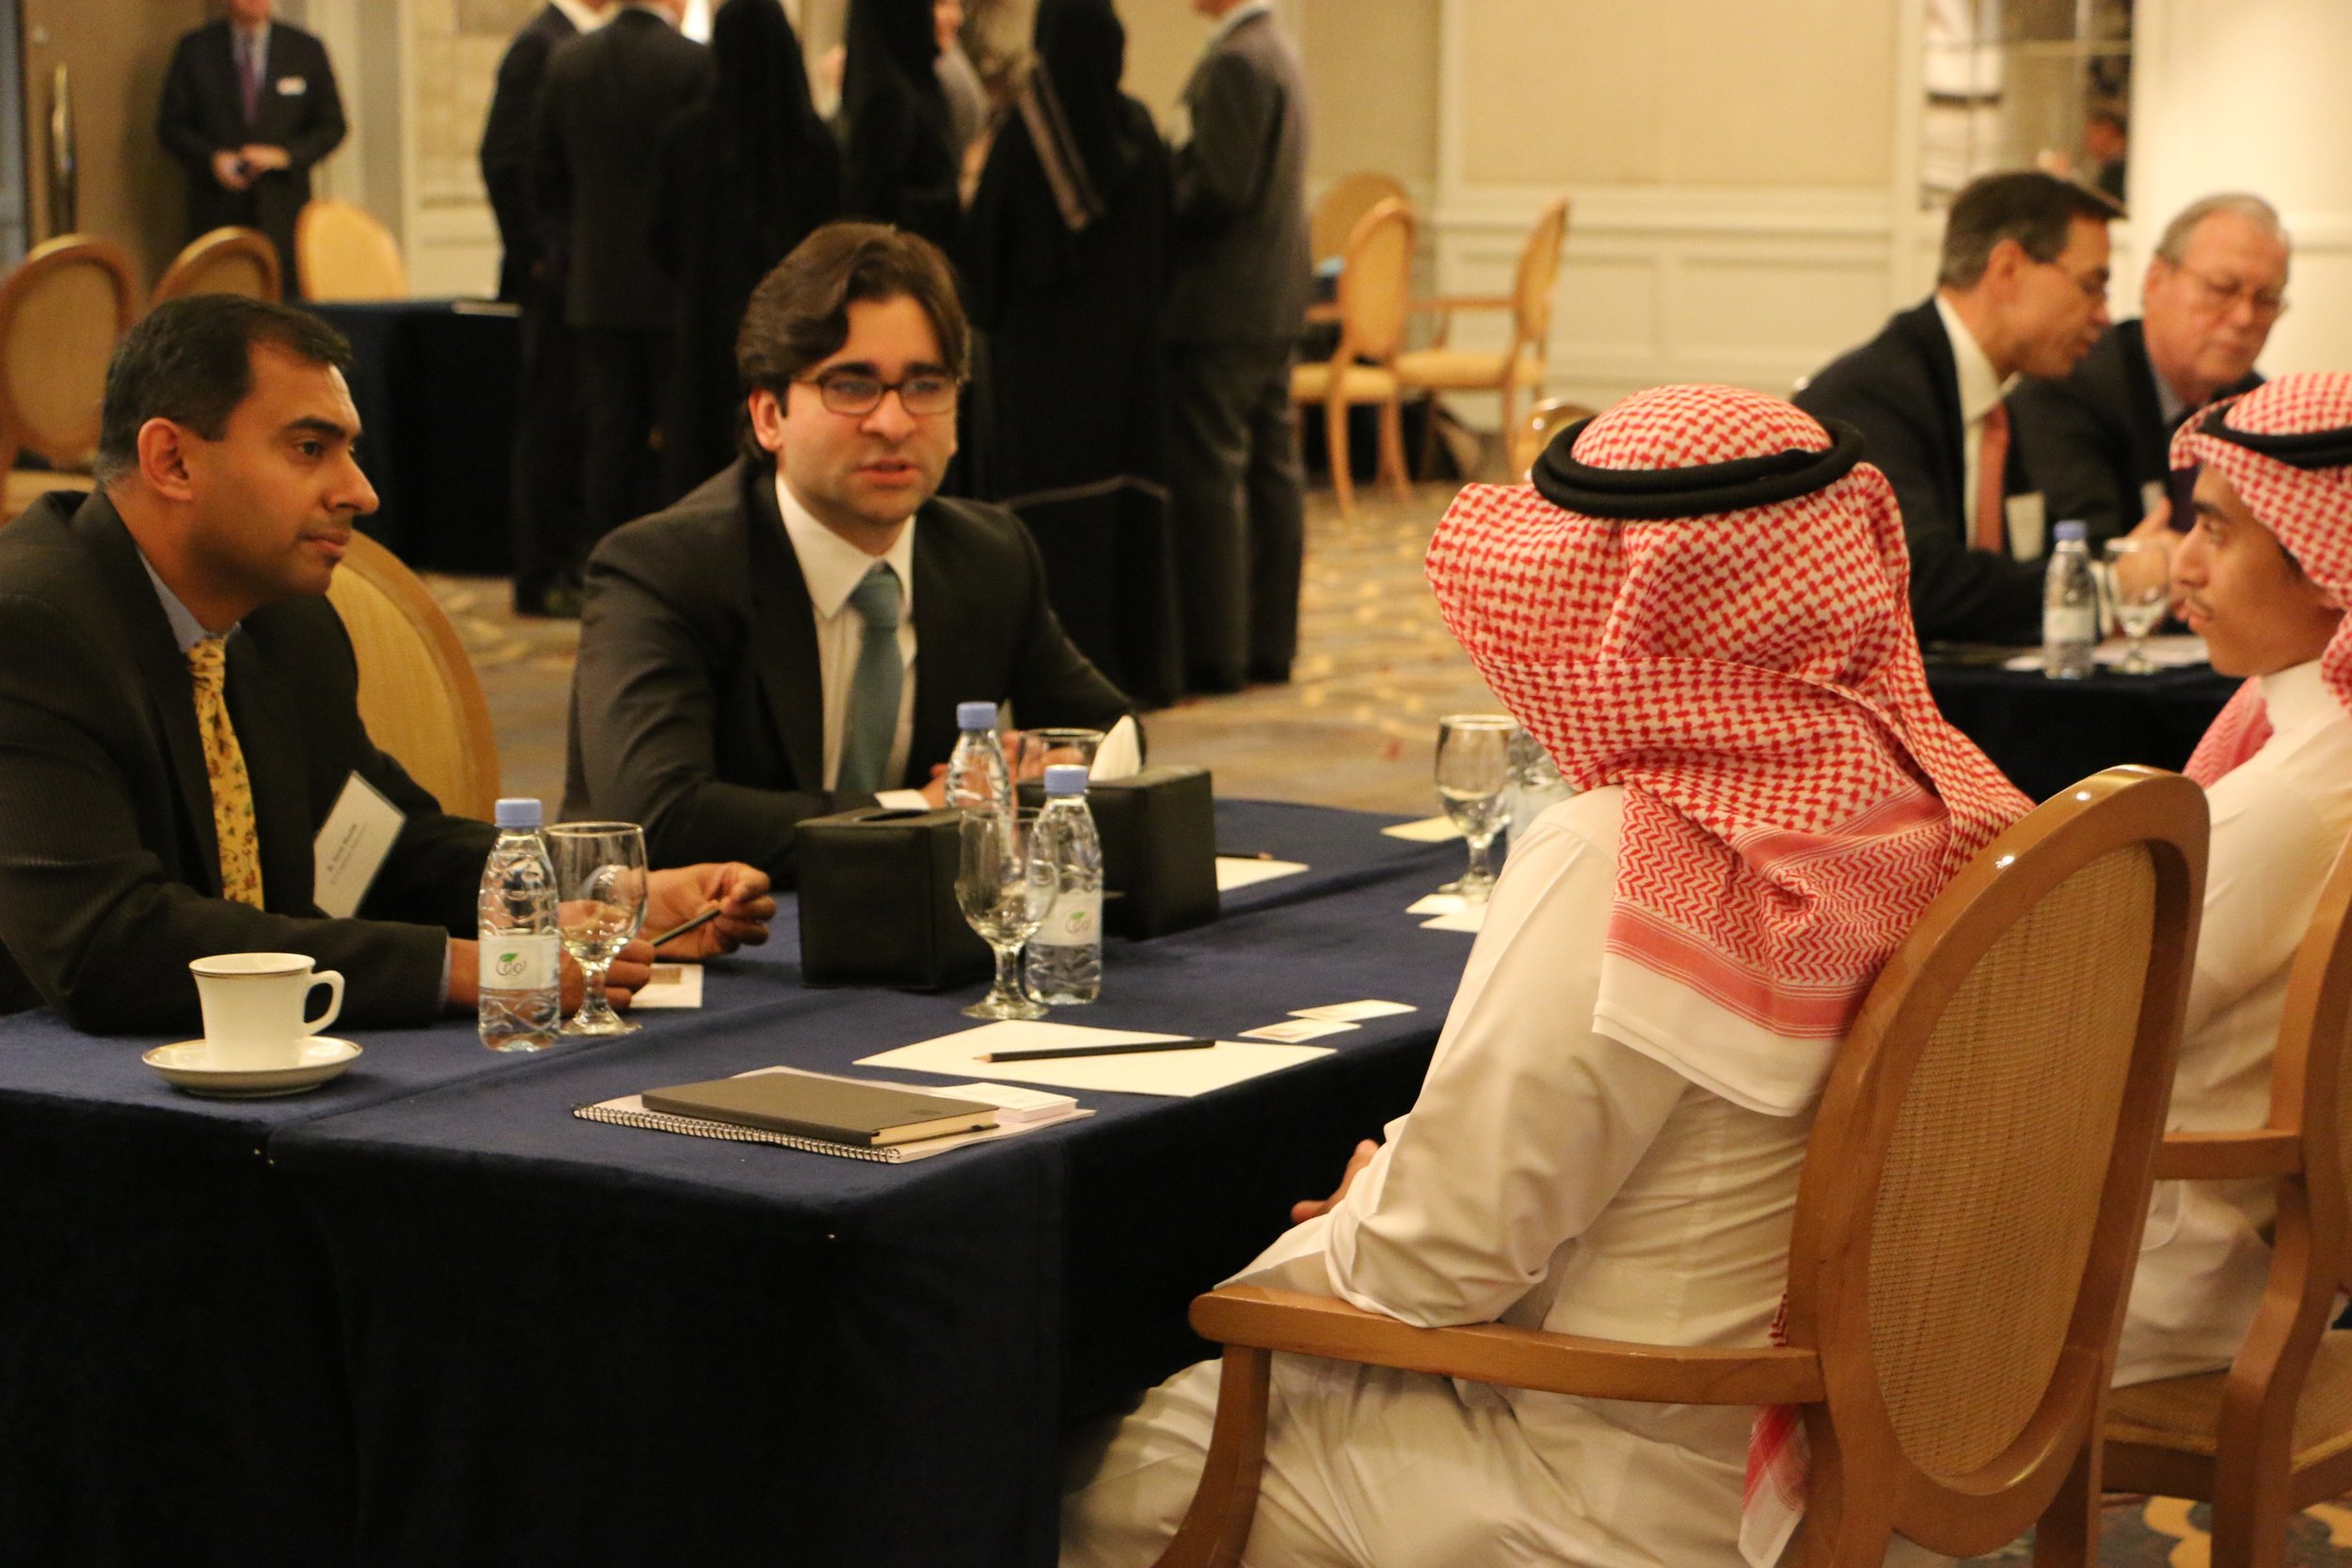 After Embassy Introductions, Delegates Discuss